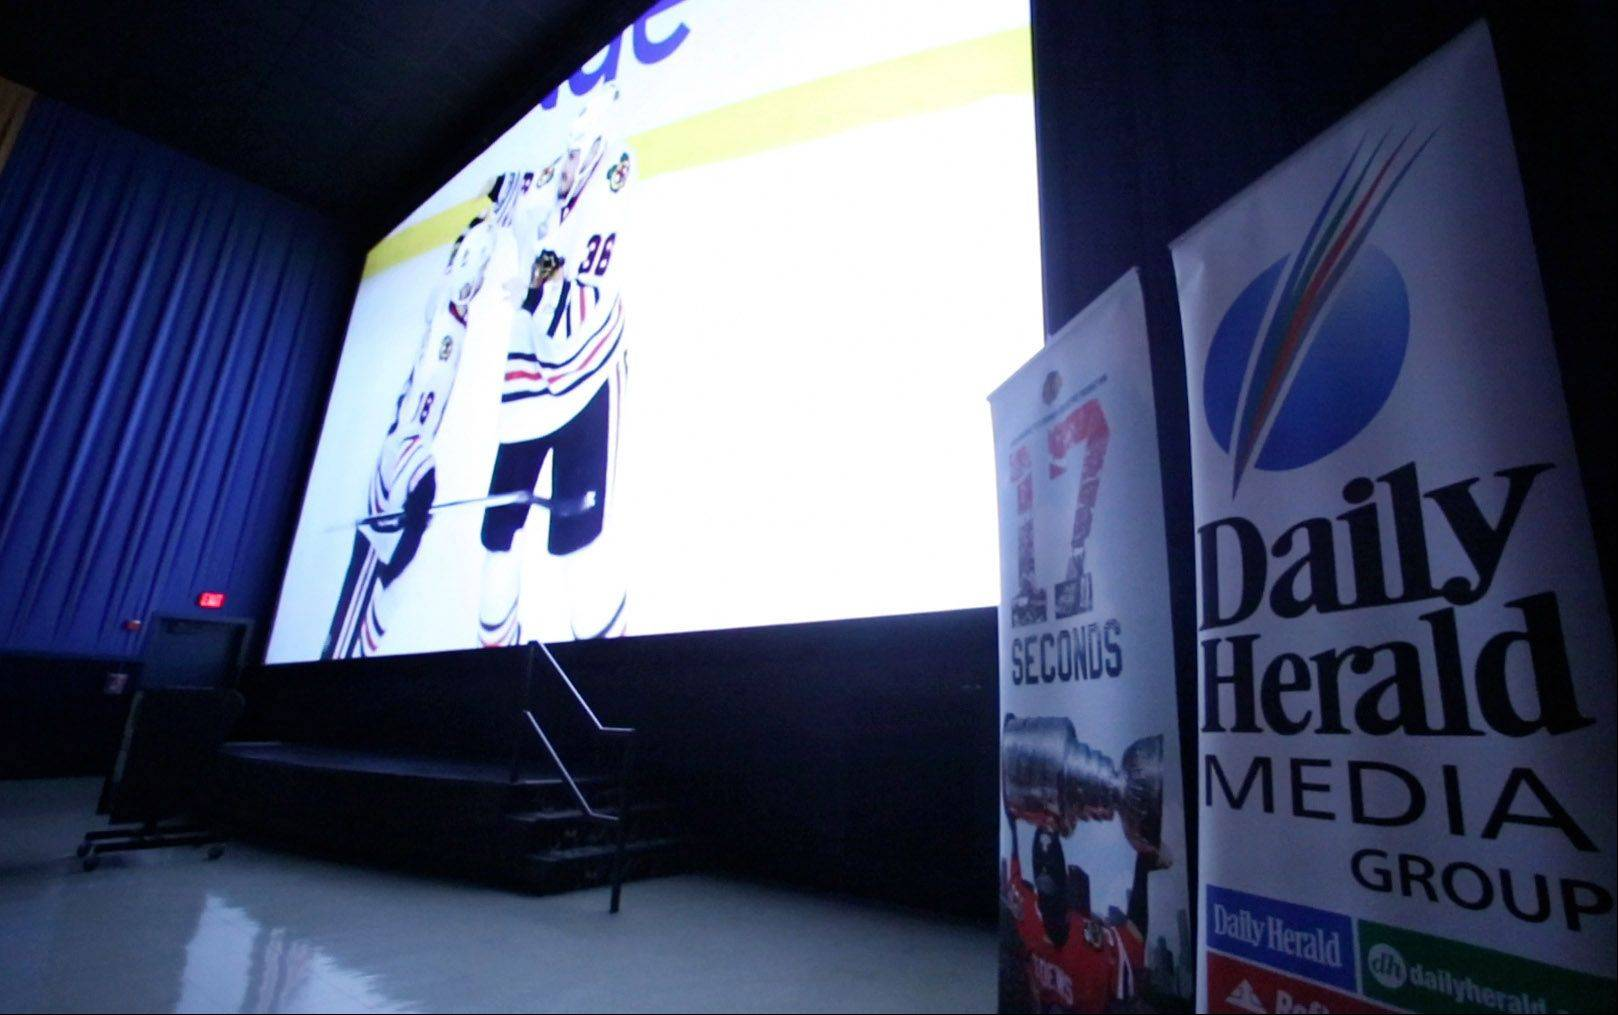 "The Daily Herald and Chicago Blackhawks teamed Sunday to screen the film ""17 Seconds"" at Classic Cinemas Theater in Elk Grove Village. The film documents the Blackhawks' 2013 Stanley Cup run."